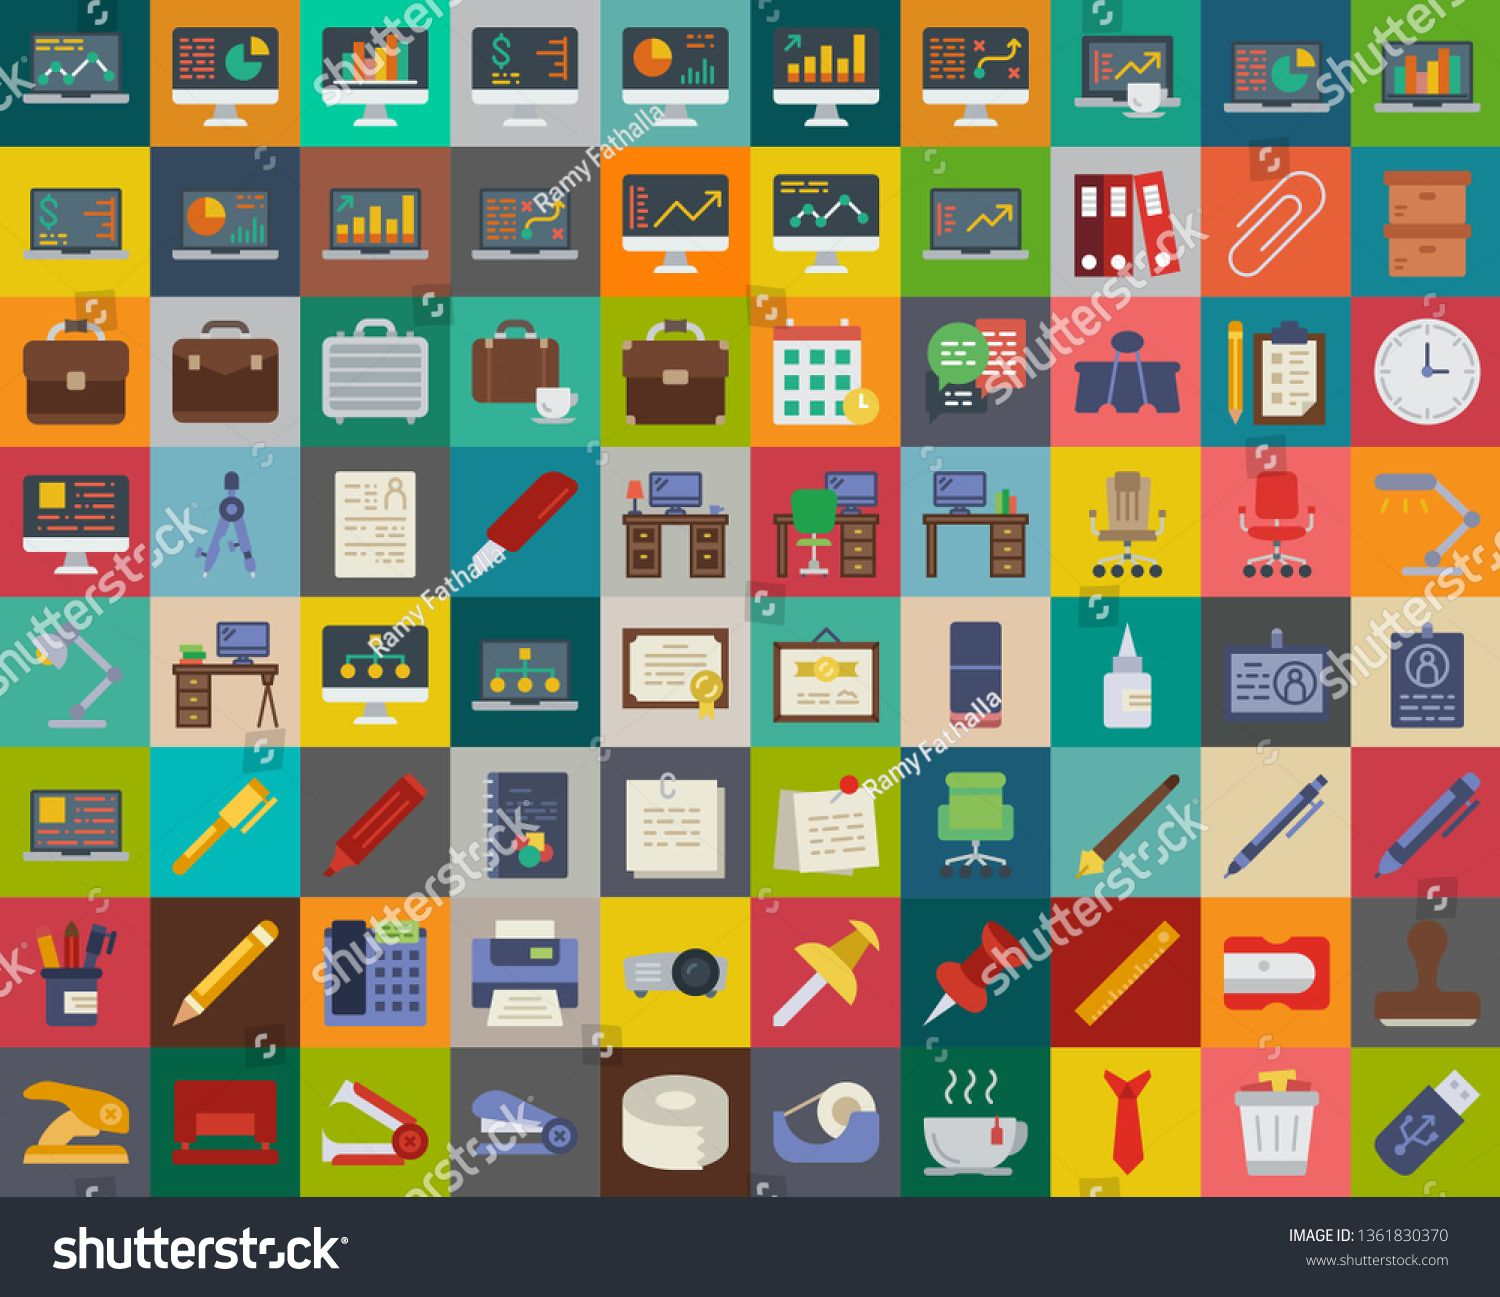 Business and Office icons set illustration pack of